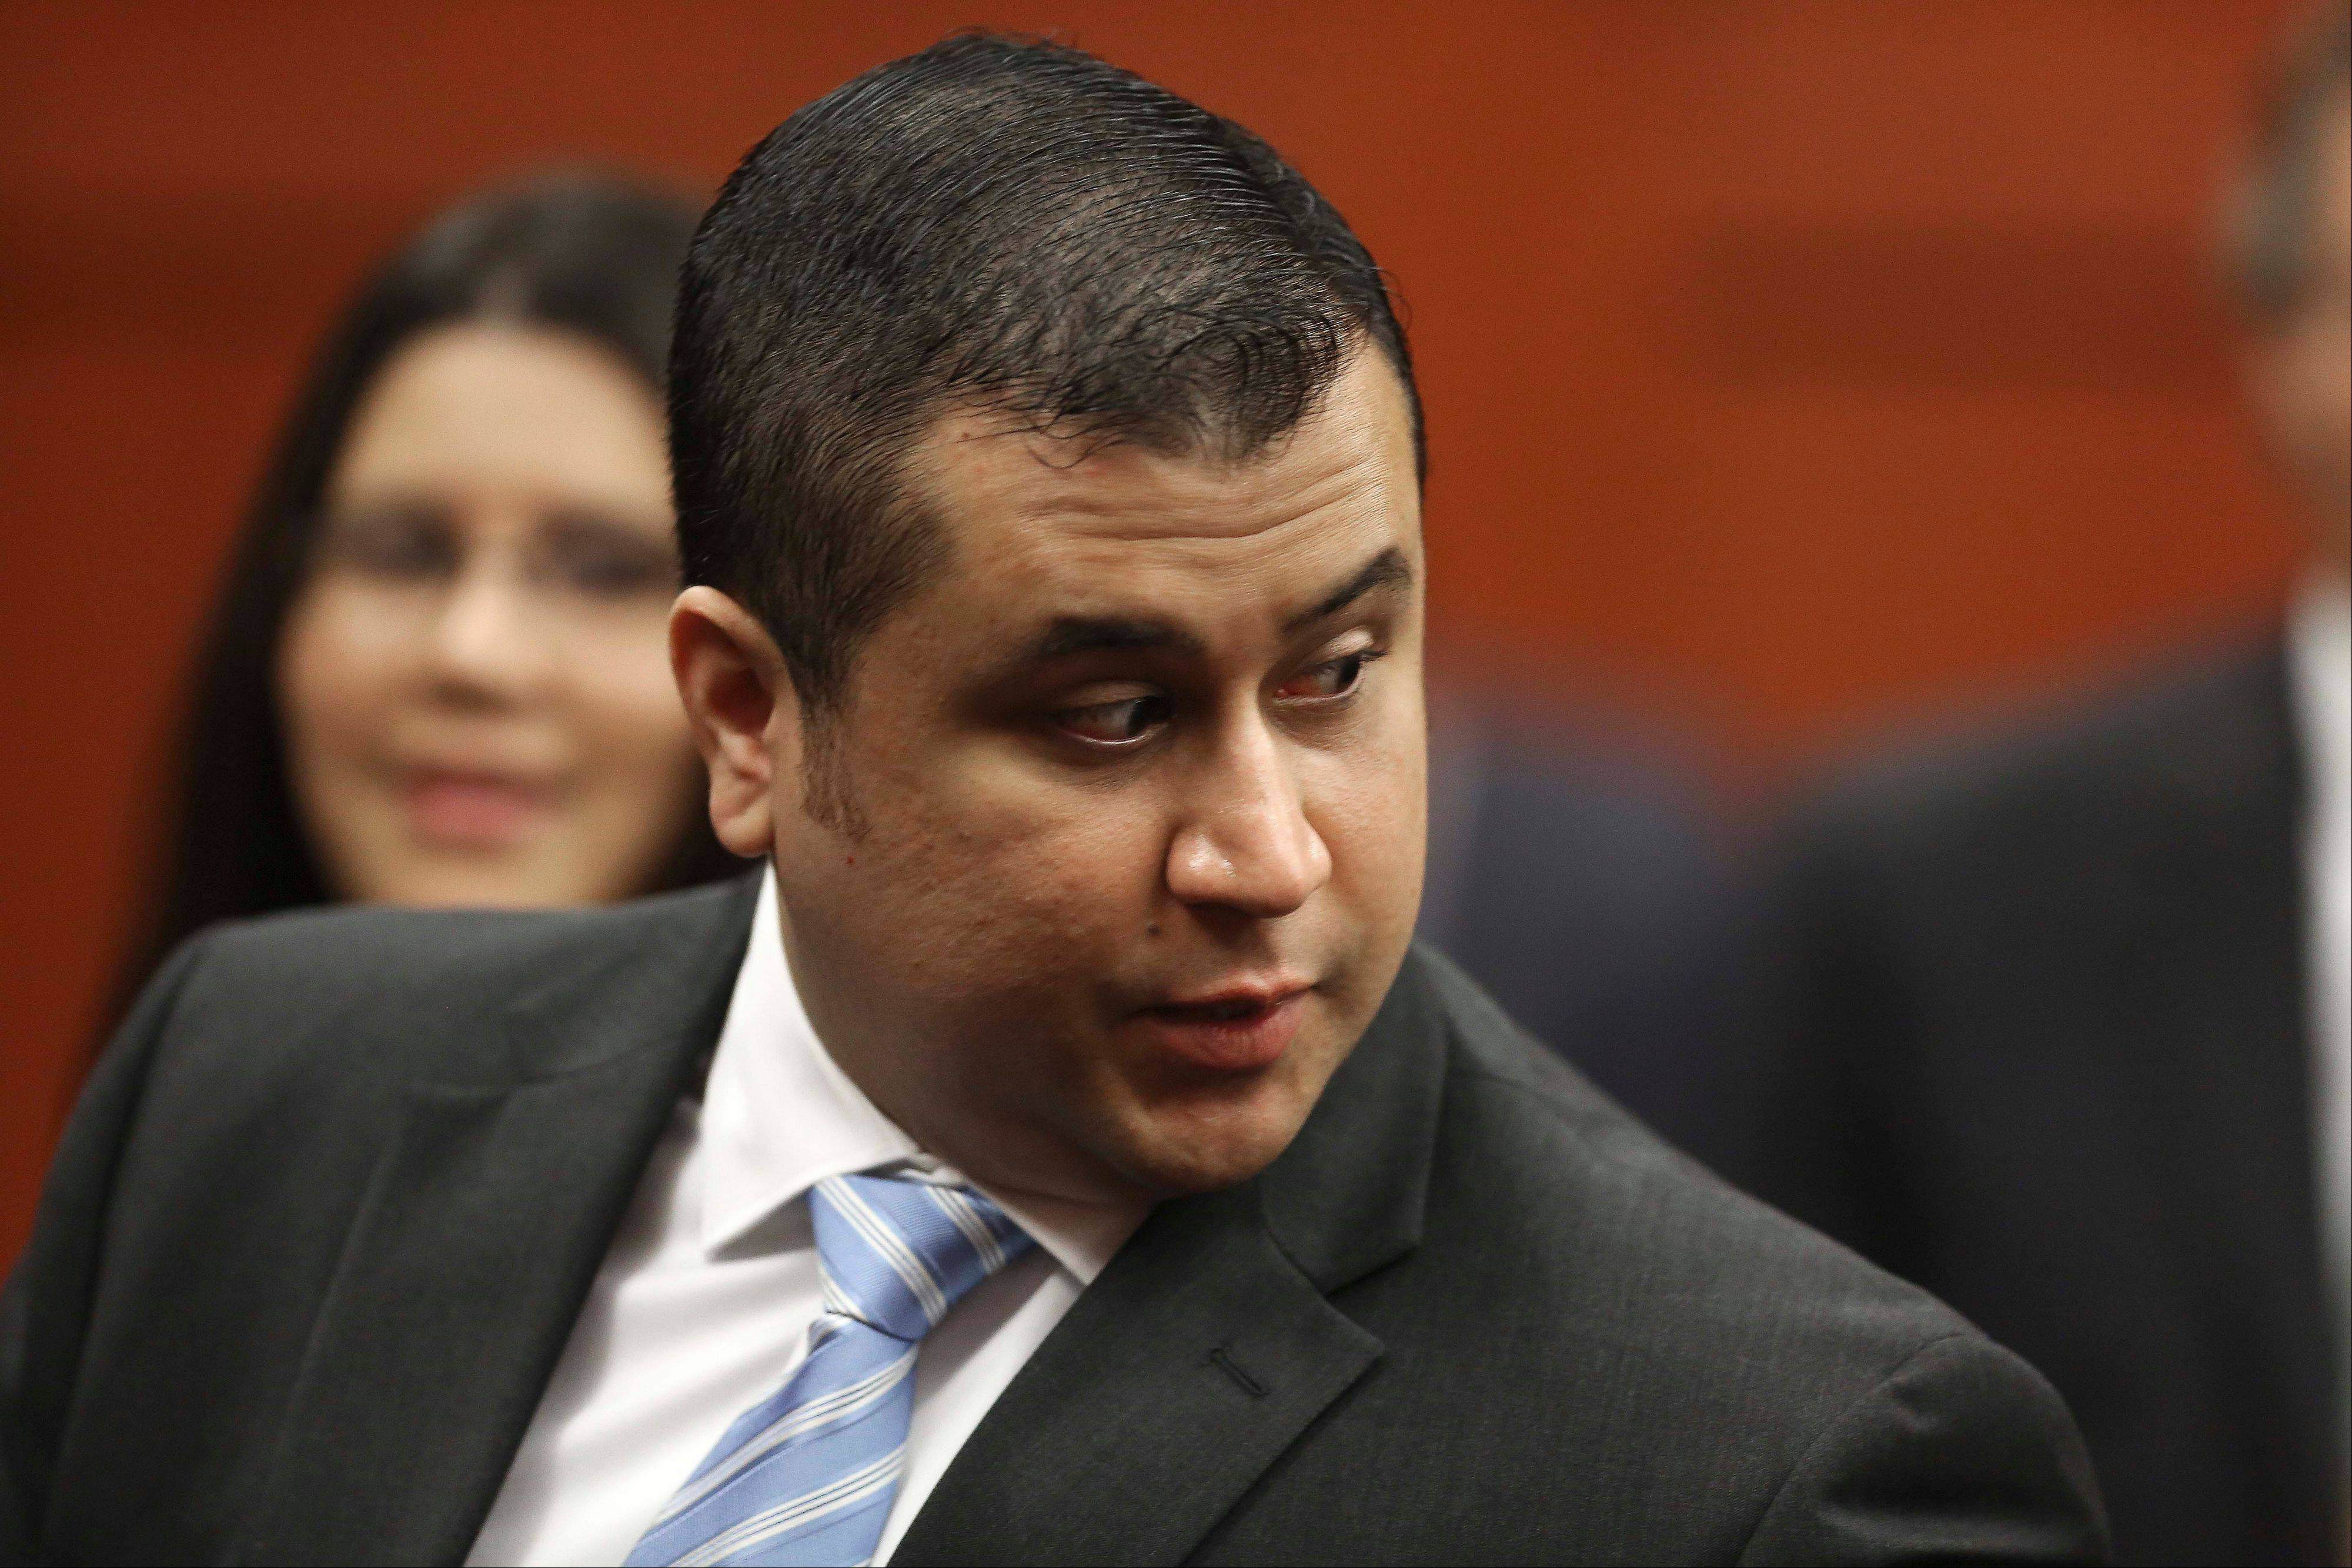 George Zimmerman enters the Seminole County Courthouse, in Sanford, Fla., during his trial on second degree murder in the killing of Trayvon Martin.